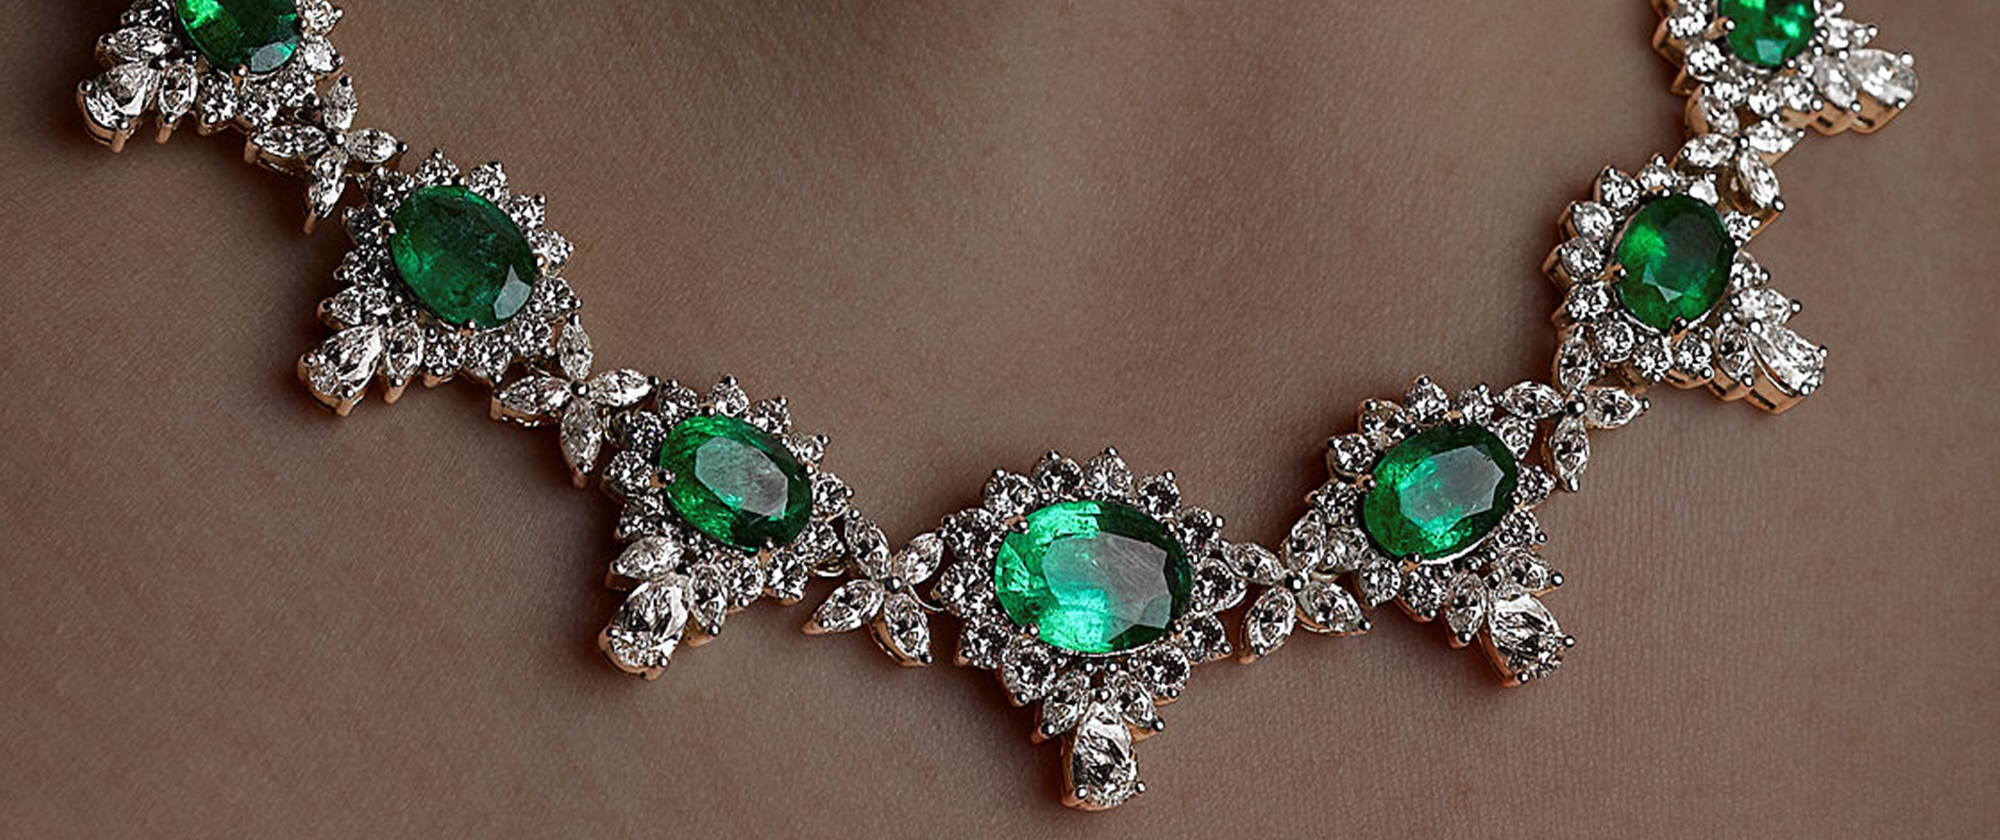 Spotlight on Emeralds